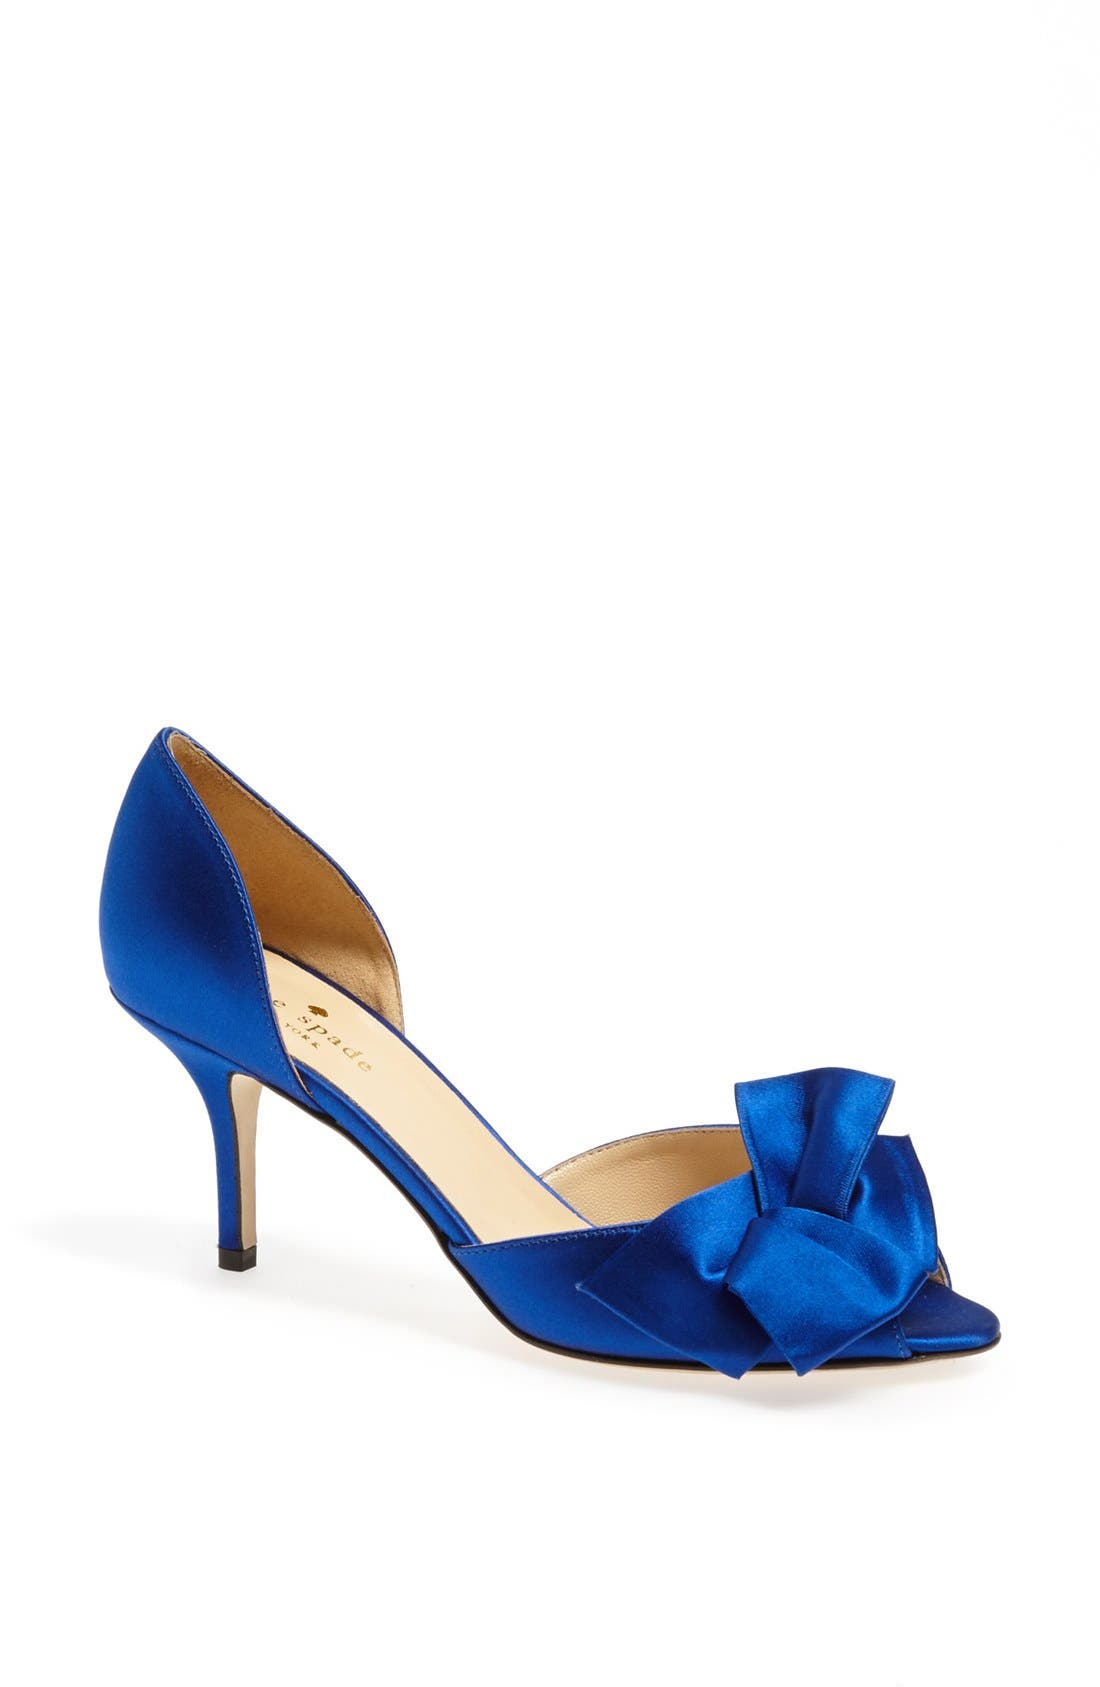 Alternate Image 1 Selected - kate spade new york 'sala' pump (Women)